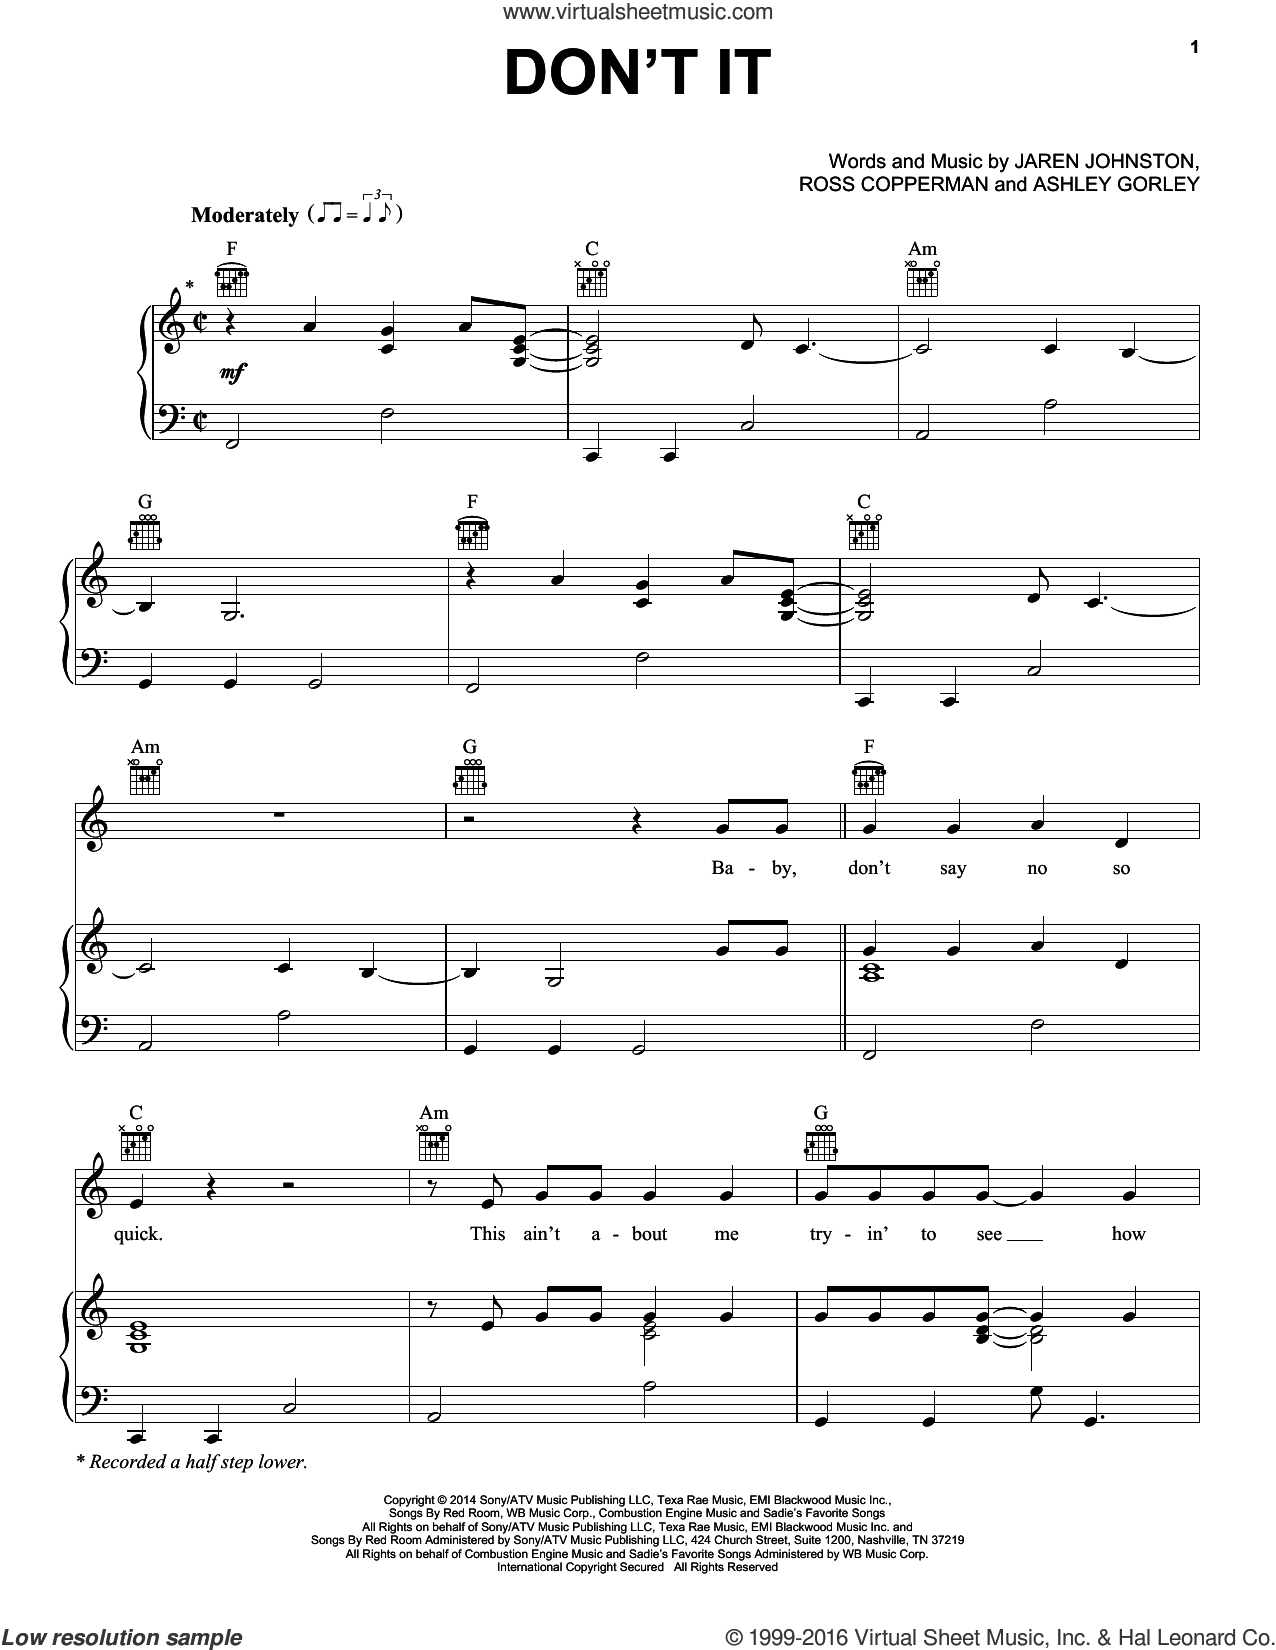 Don't It sheet music for voice, piano or guitar by Billy Currington, Ashley Gorley, Jaren Johnston and Ross Copperman, intermediate skill level